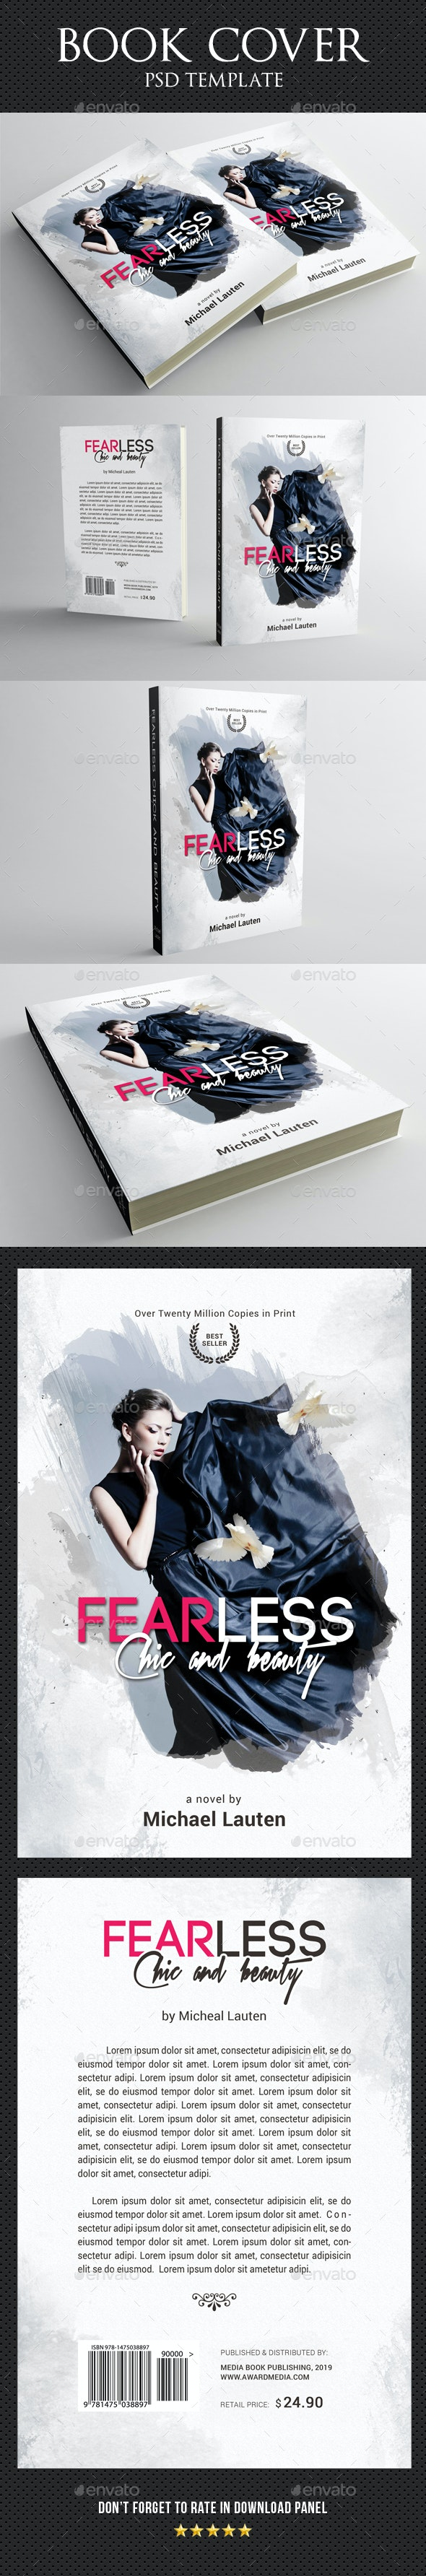 Book Cover Template 59 - Miscellaneous Print Templates